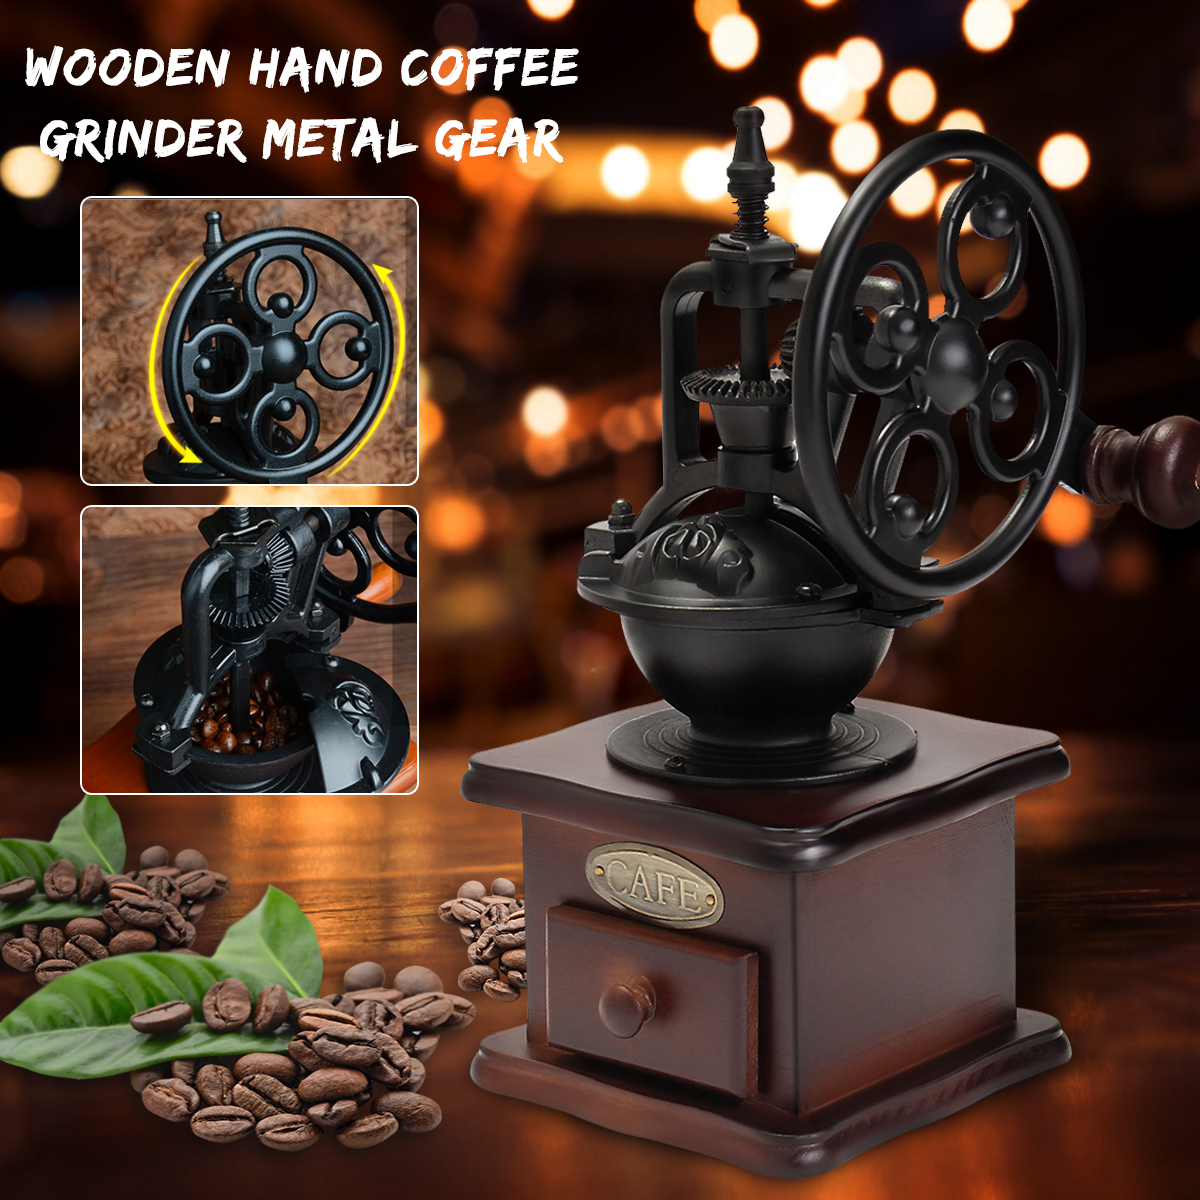 Ferris Wheel Design Vintage Manual Coffee Grinder With Ceramic Movement Retro Wooden Coffee Mill Coffee Bean Grinding Machinen контейнер для приготовления на пару redmond ram st3